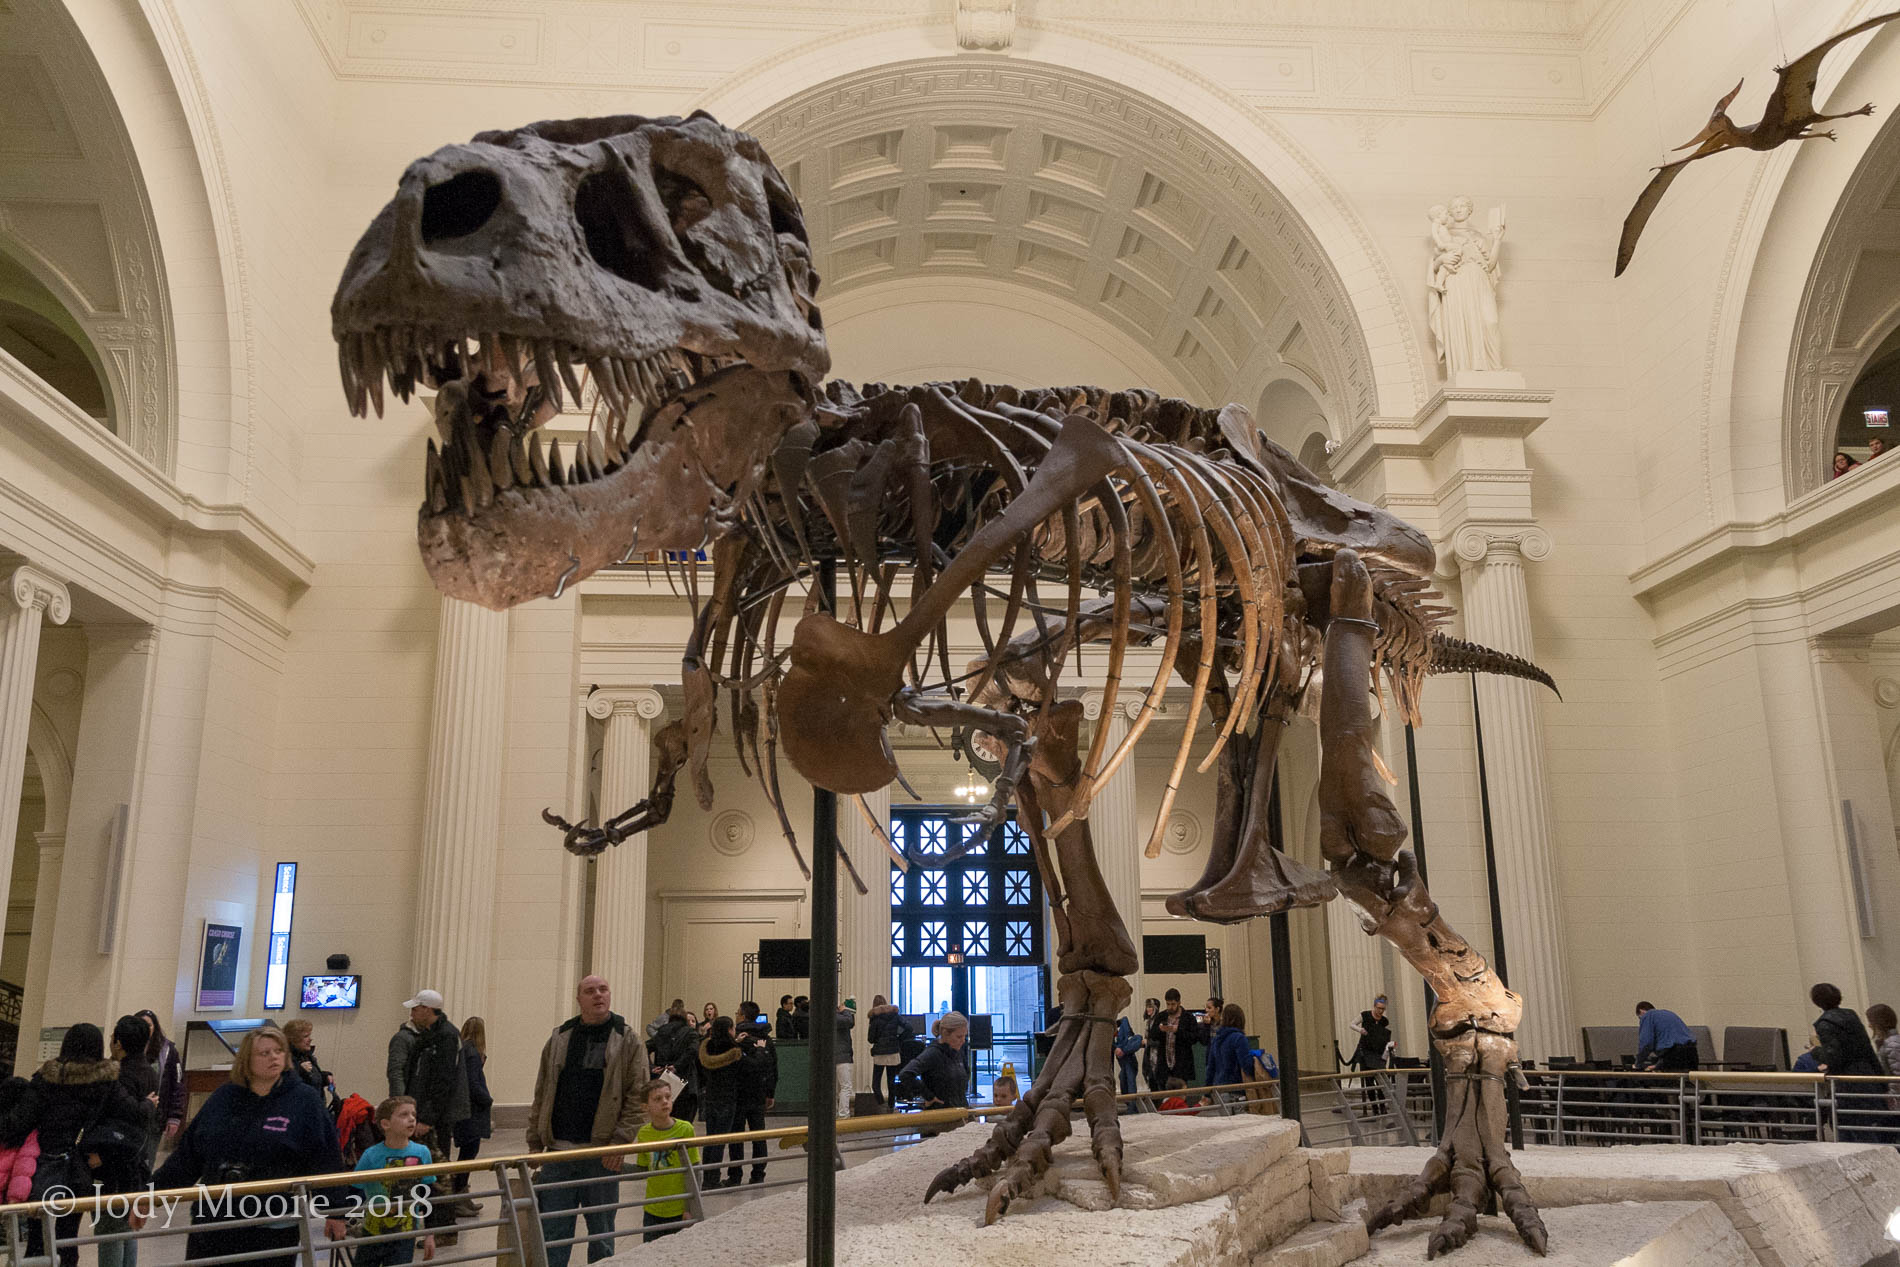 My first visit with Sue, in Feb. 2015 at the Field Museum of Natural History in Chicago.